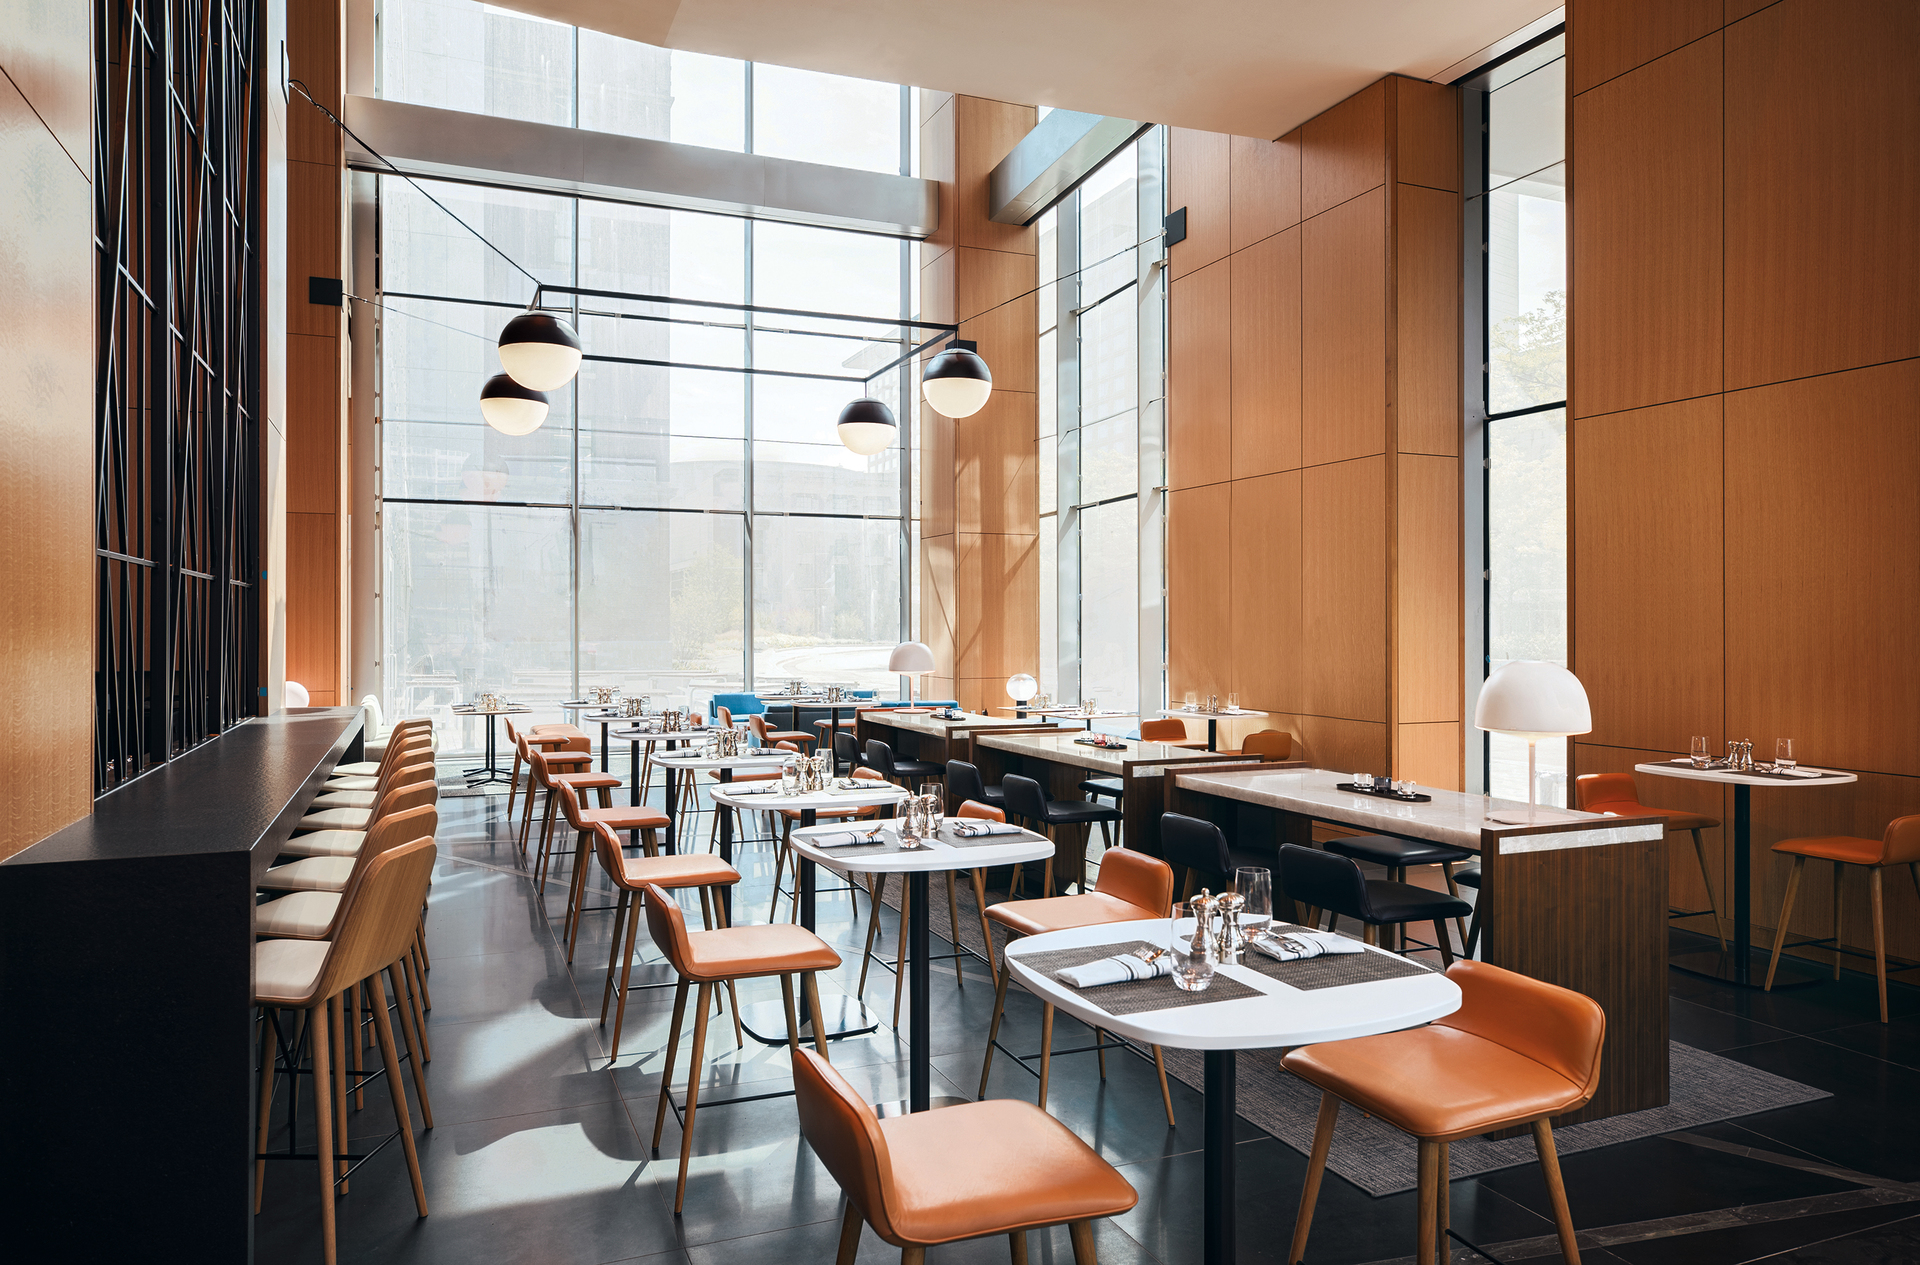 Woven & Bound, the Marquis' restaurant (paying homage to the history of American Book Co. with its name) transitions seamlessly from 2121 Pantry, with expansive space and warm, welcoming light from bespoke globe pendants by OCL. The pendants are also seen from Prairie Avenue via the hotel's tall glass paneling.